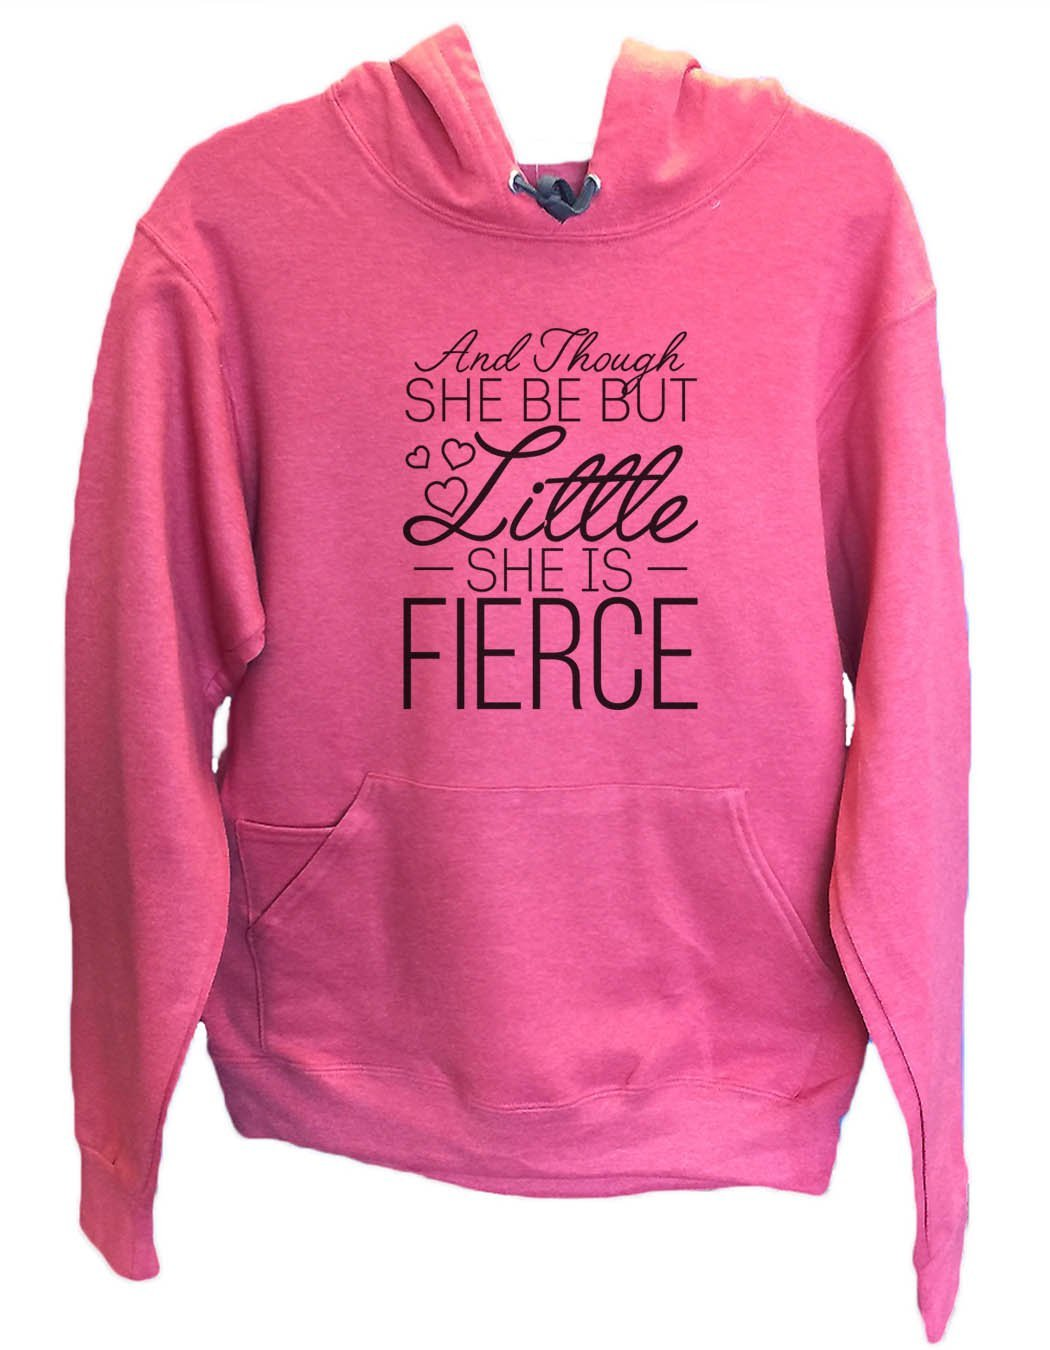 UNISEX HOODIE - And Though She Be But Little She Is Fierce - FUNNY MENS AND WOMENS HOODED SWEATSHIRTS - 2144 Funny Shirt